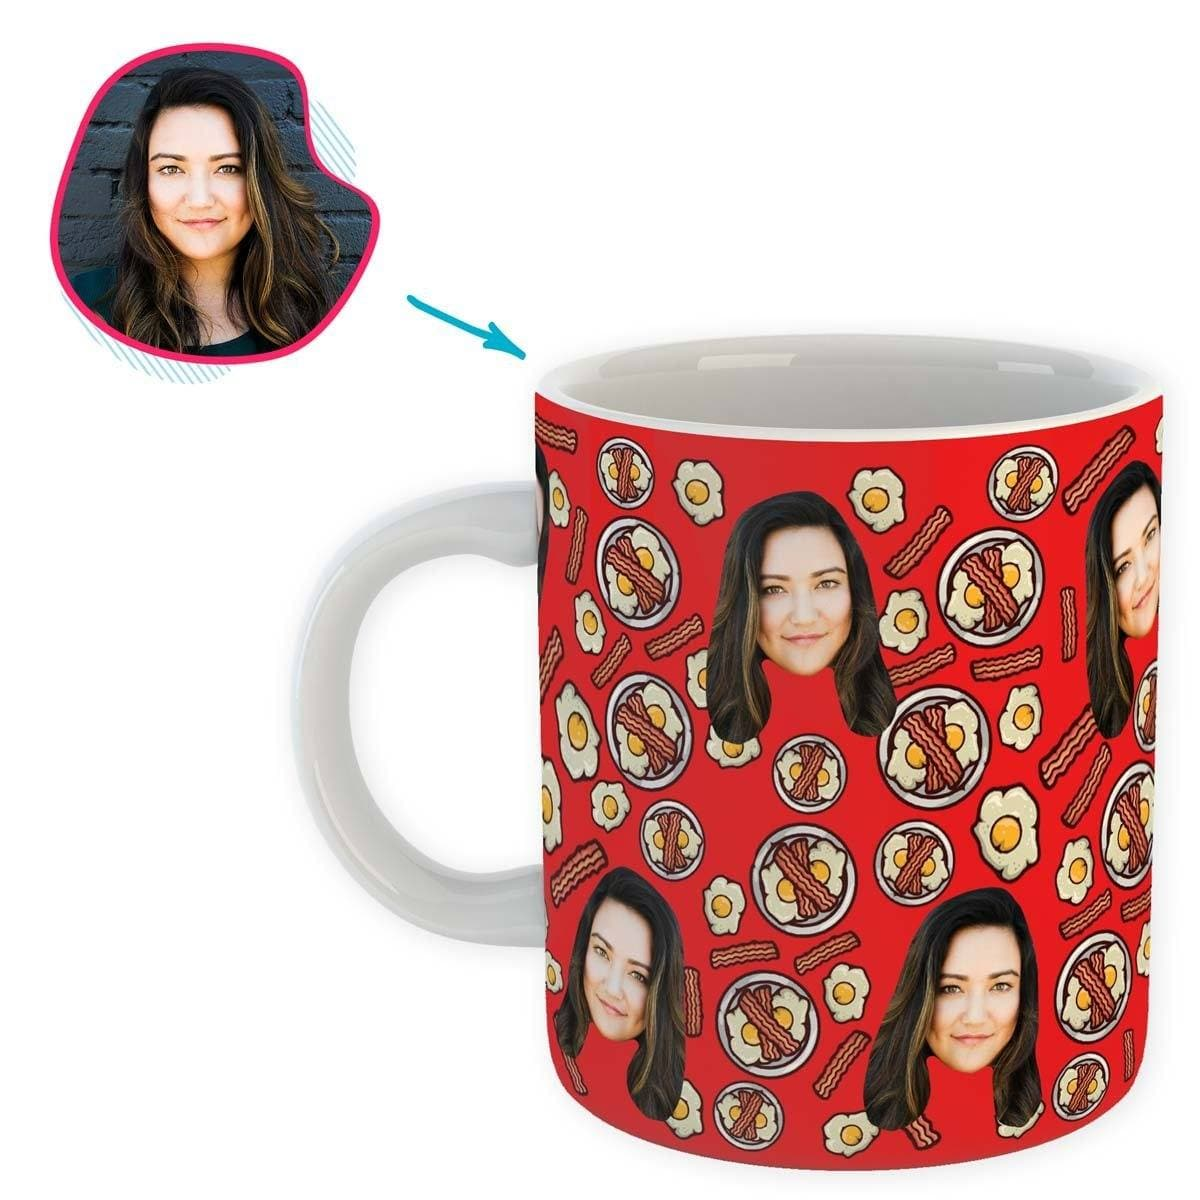 red Bacon and Eggs mug personalized with photo of face printed on it